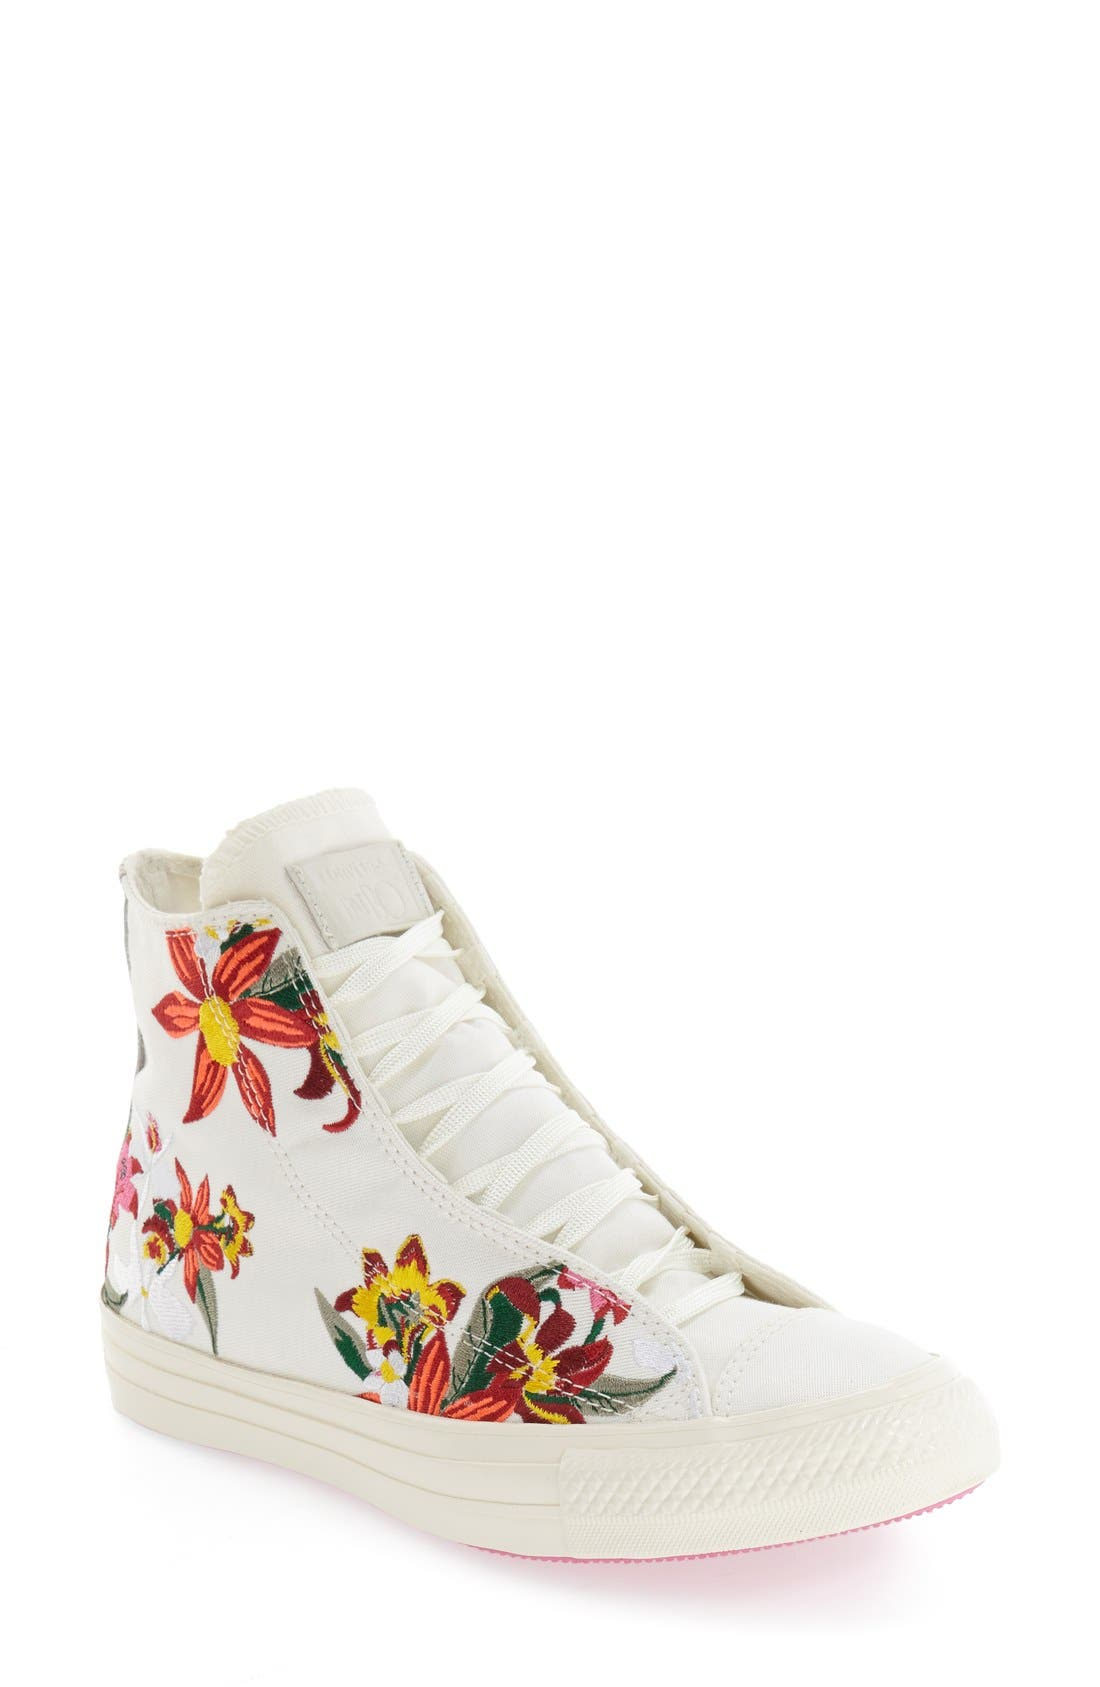 Chuck Taylor<sup>®</sup> All Star<sup>®</sup> 'Patbo' Floral High Top Sneaker, Main, color, 100